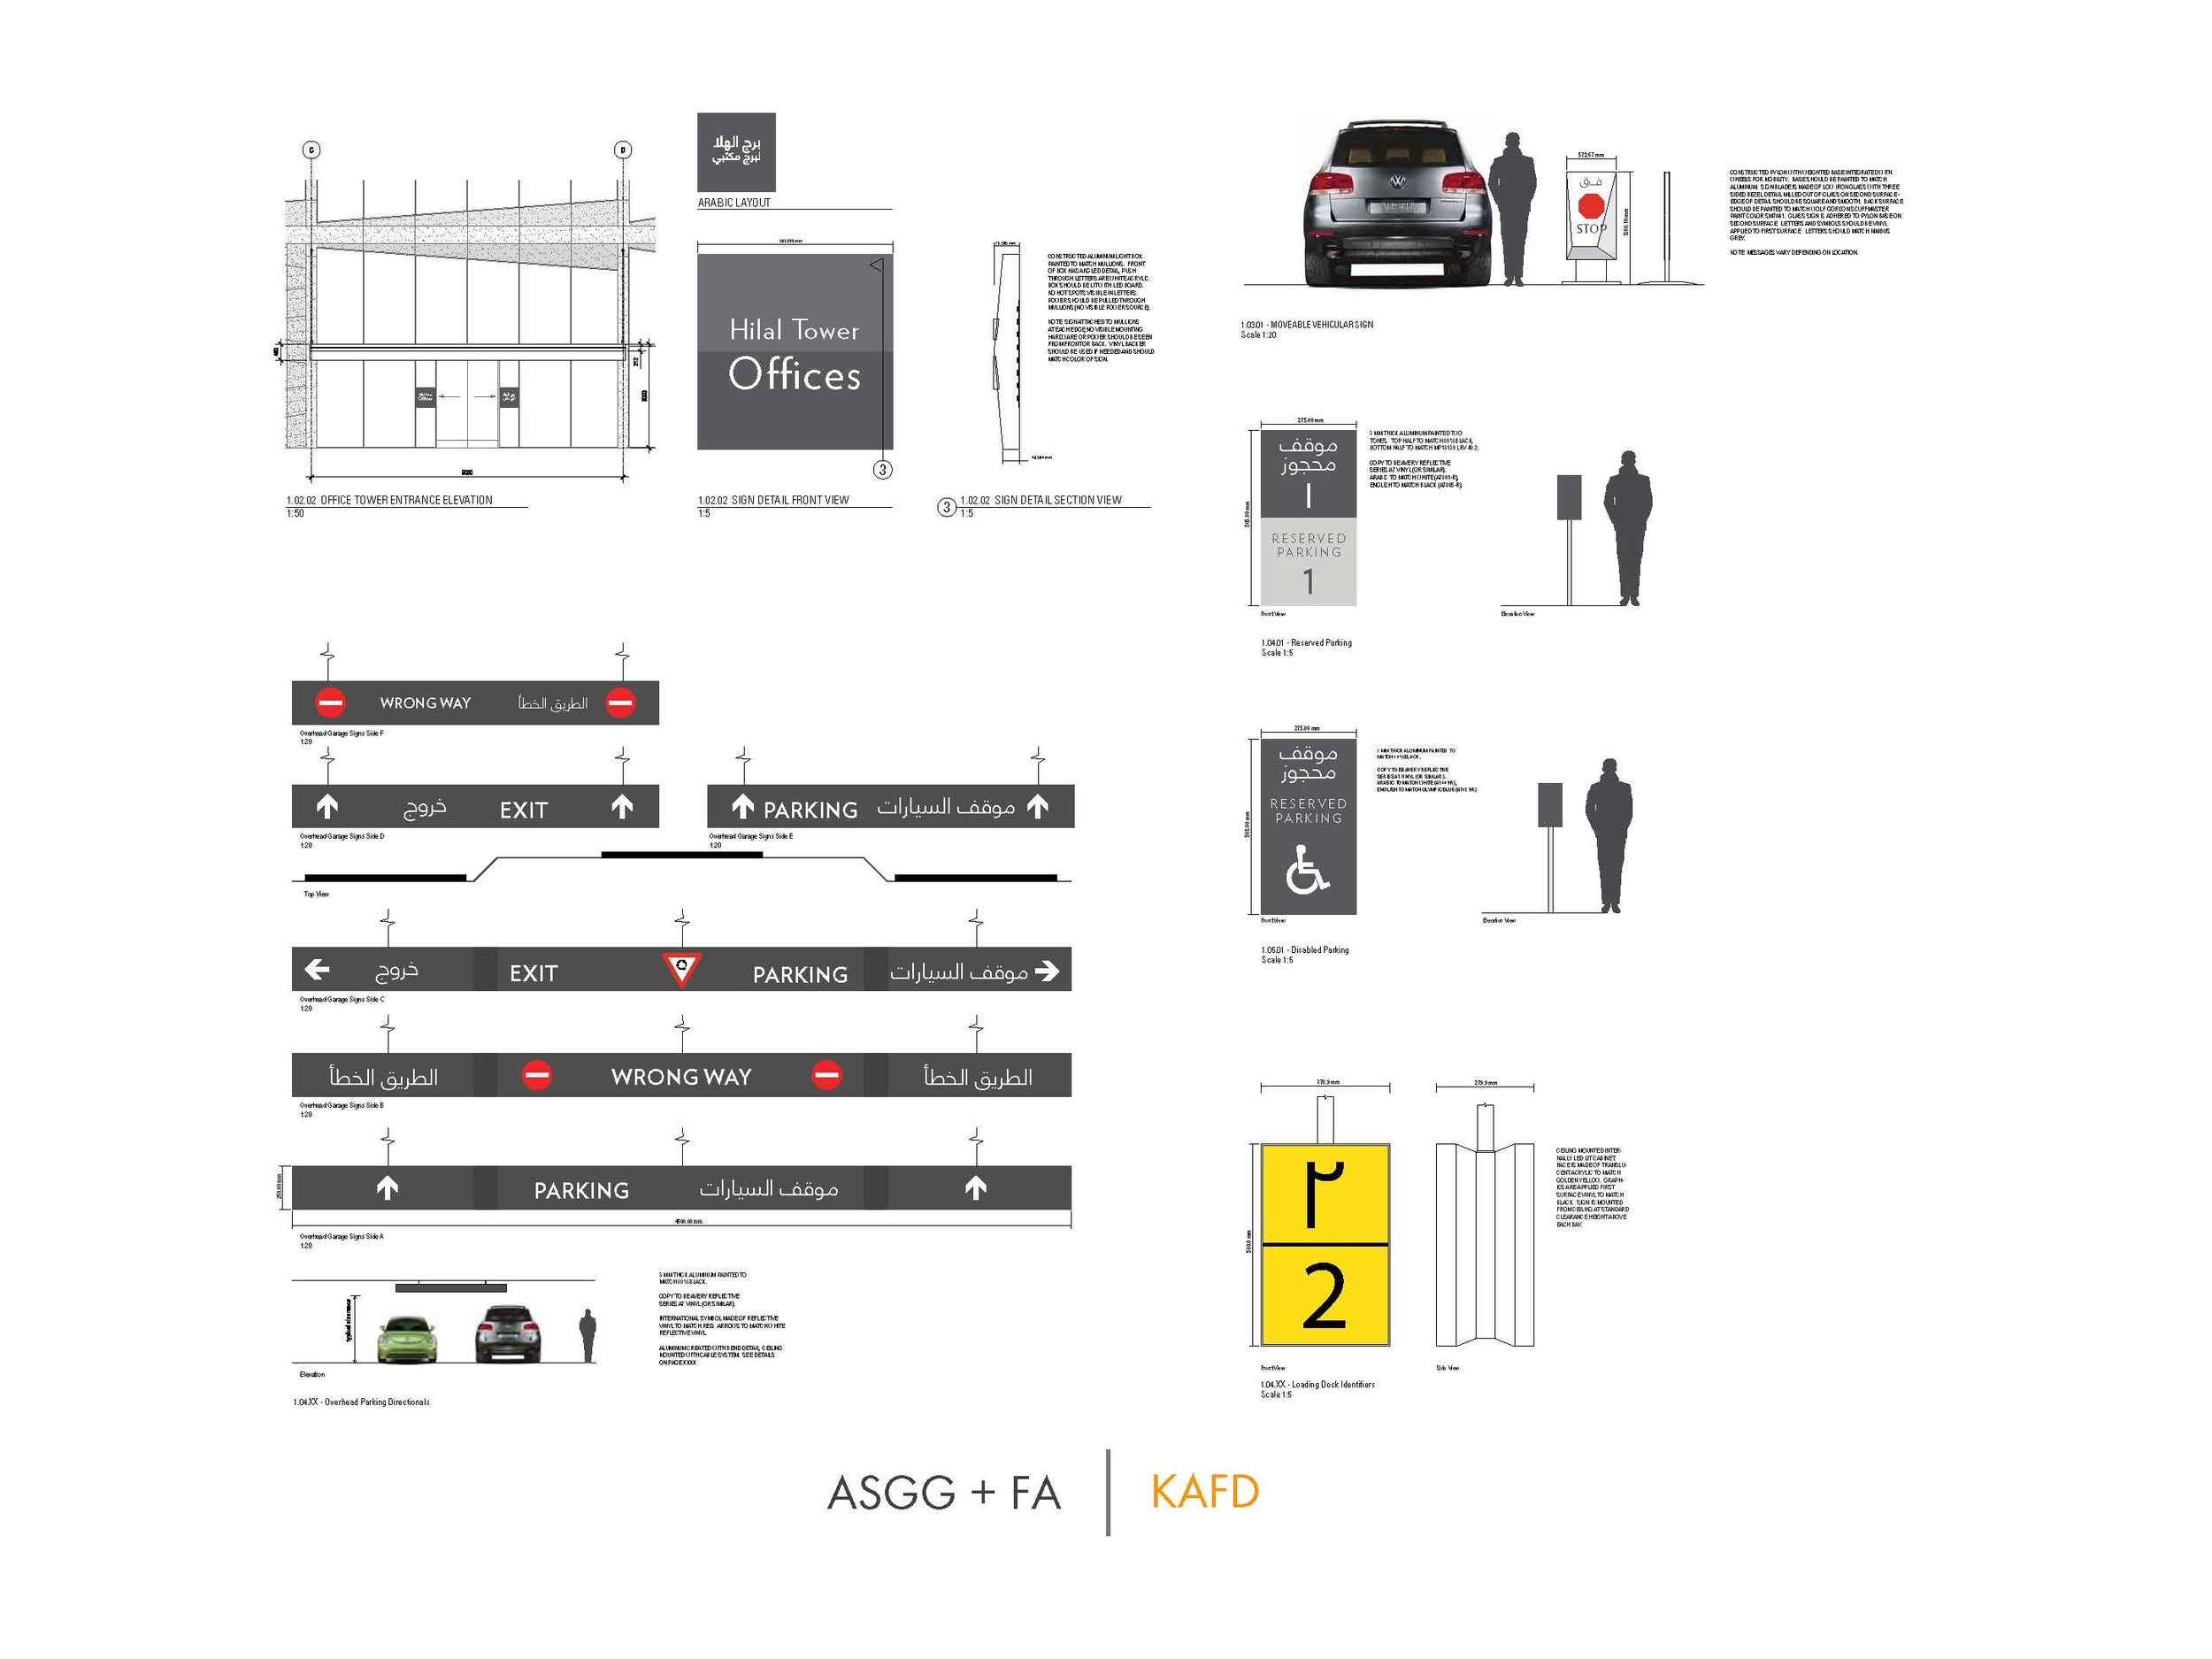 Signage and wayfinding for KAFD. Parking Garage signage and wayfinding.